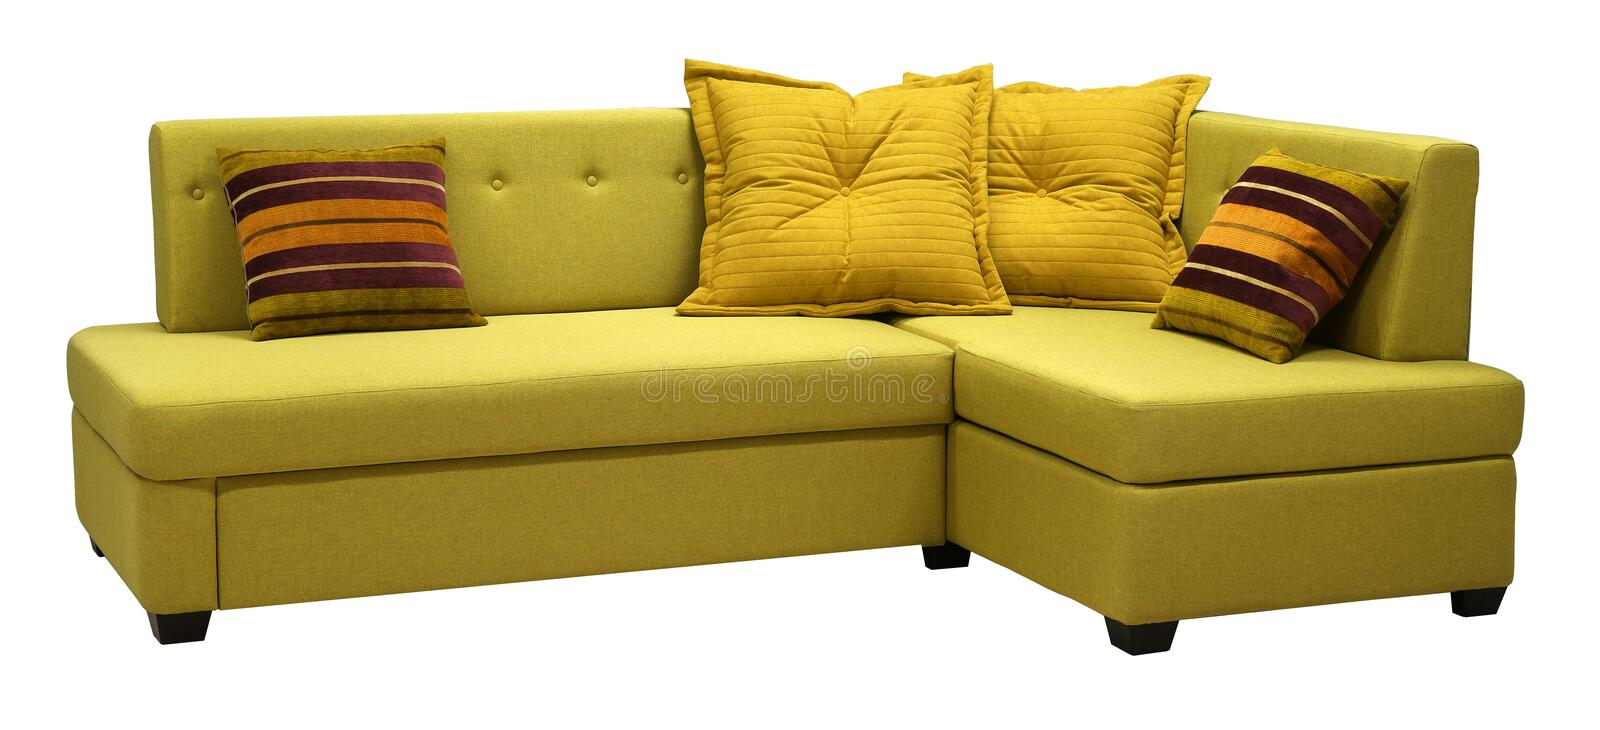 Corner sofa isolated on white background. Including clipping path. Colored decorative pillows royalty free stock photos